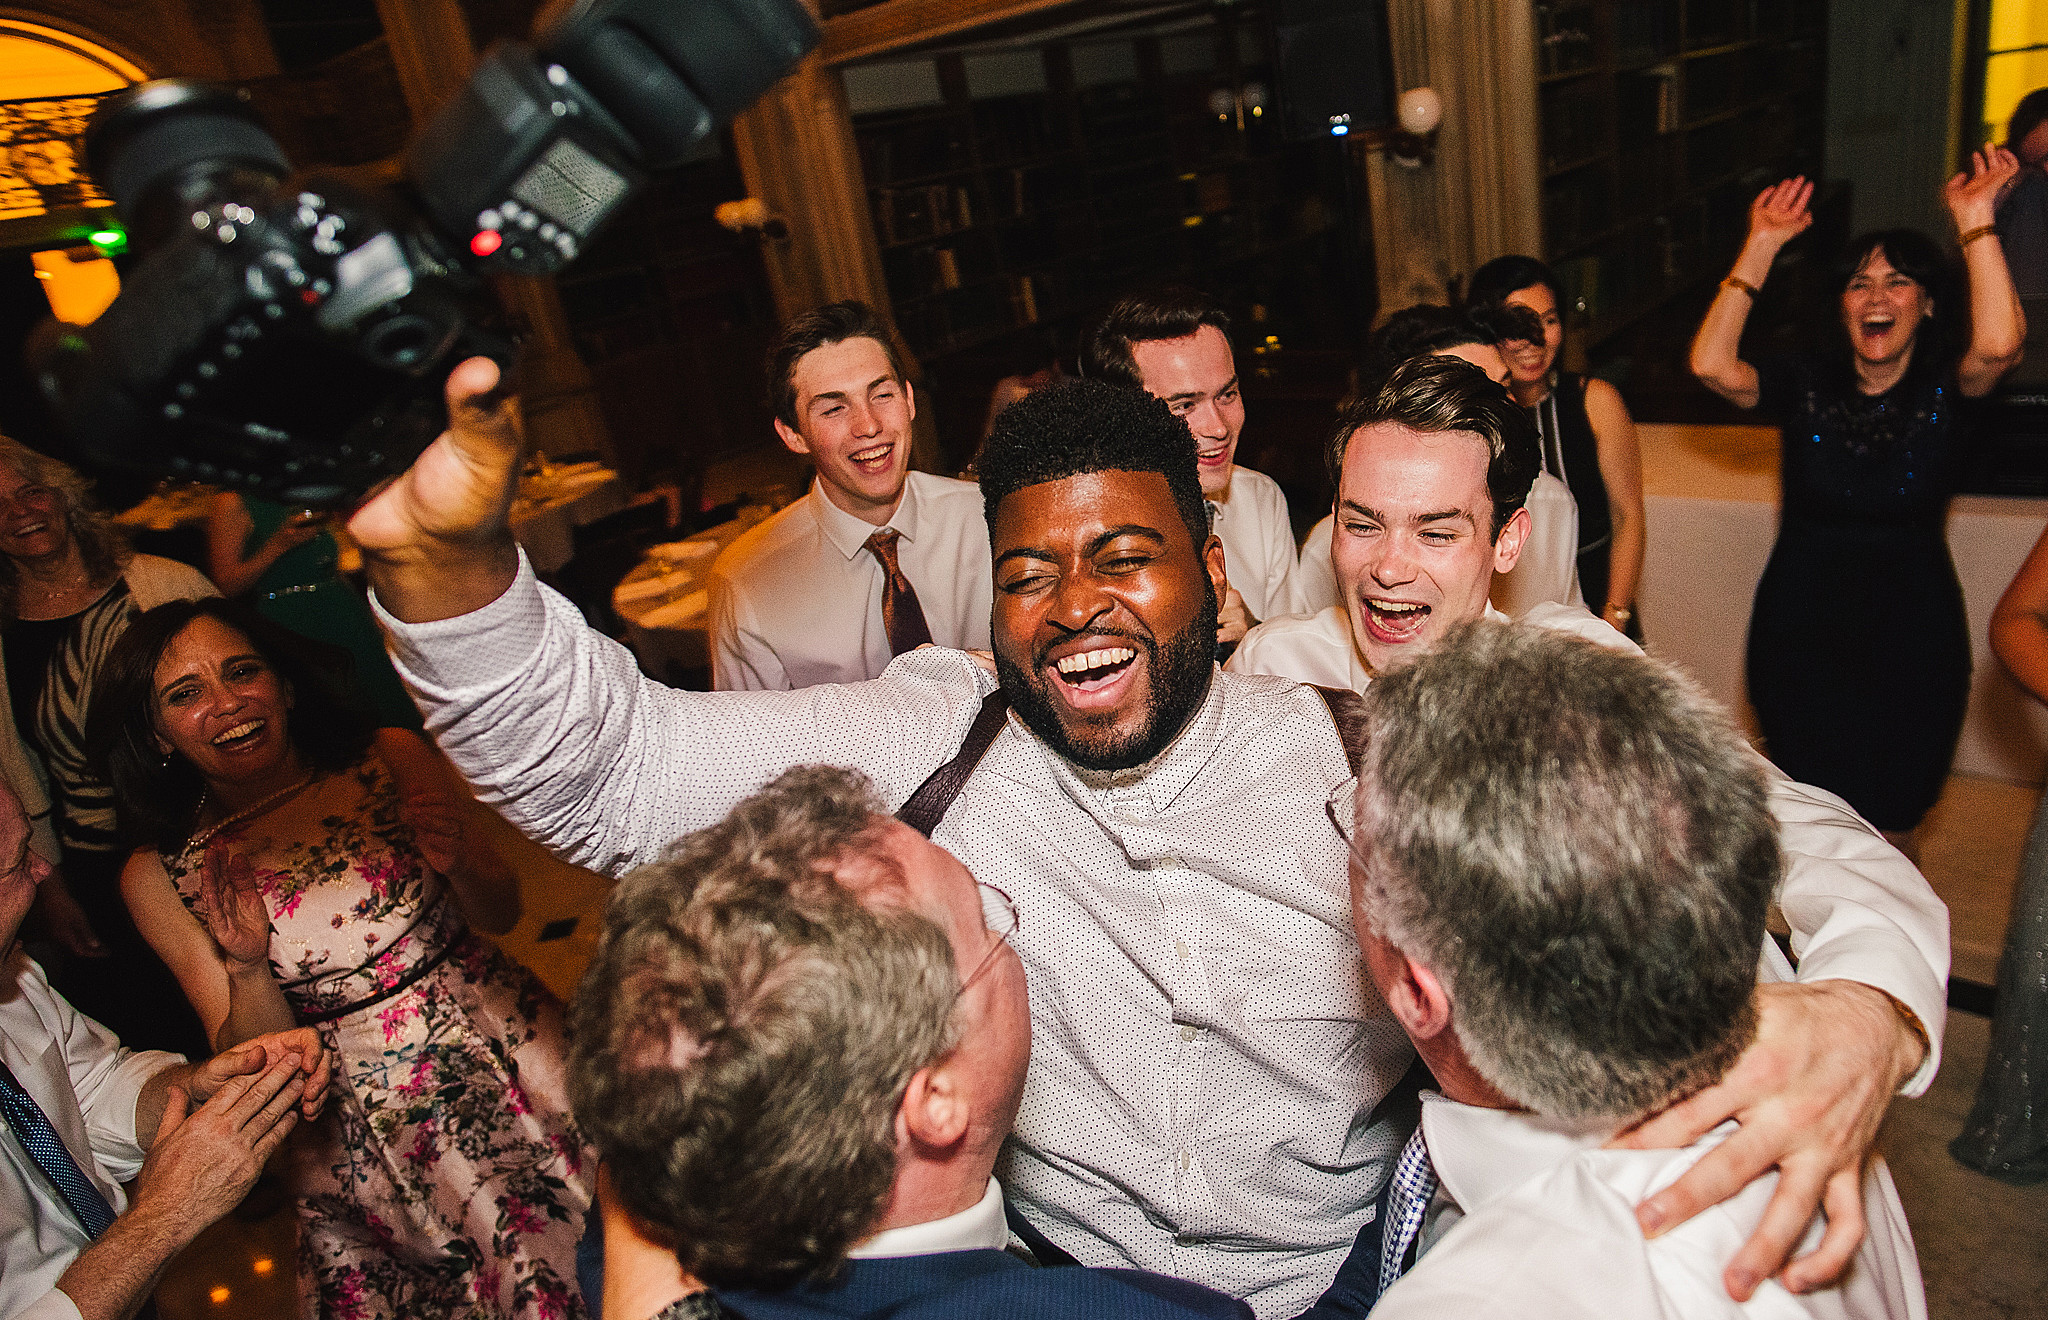 photographer dances with guests at wedding